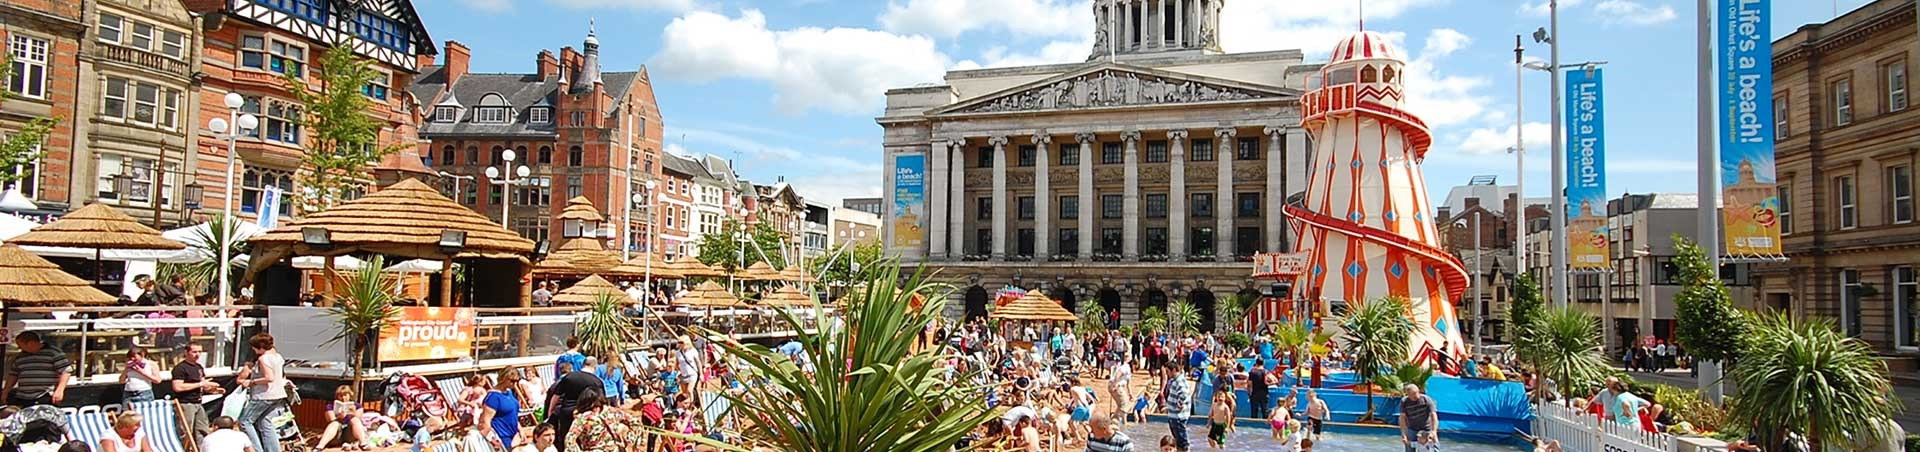 Temporary beach at Market Square, Nottingham